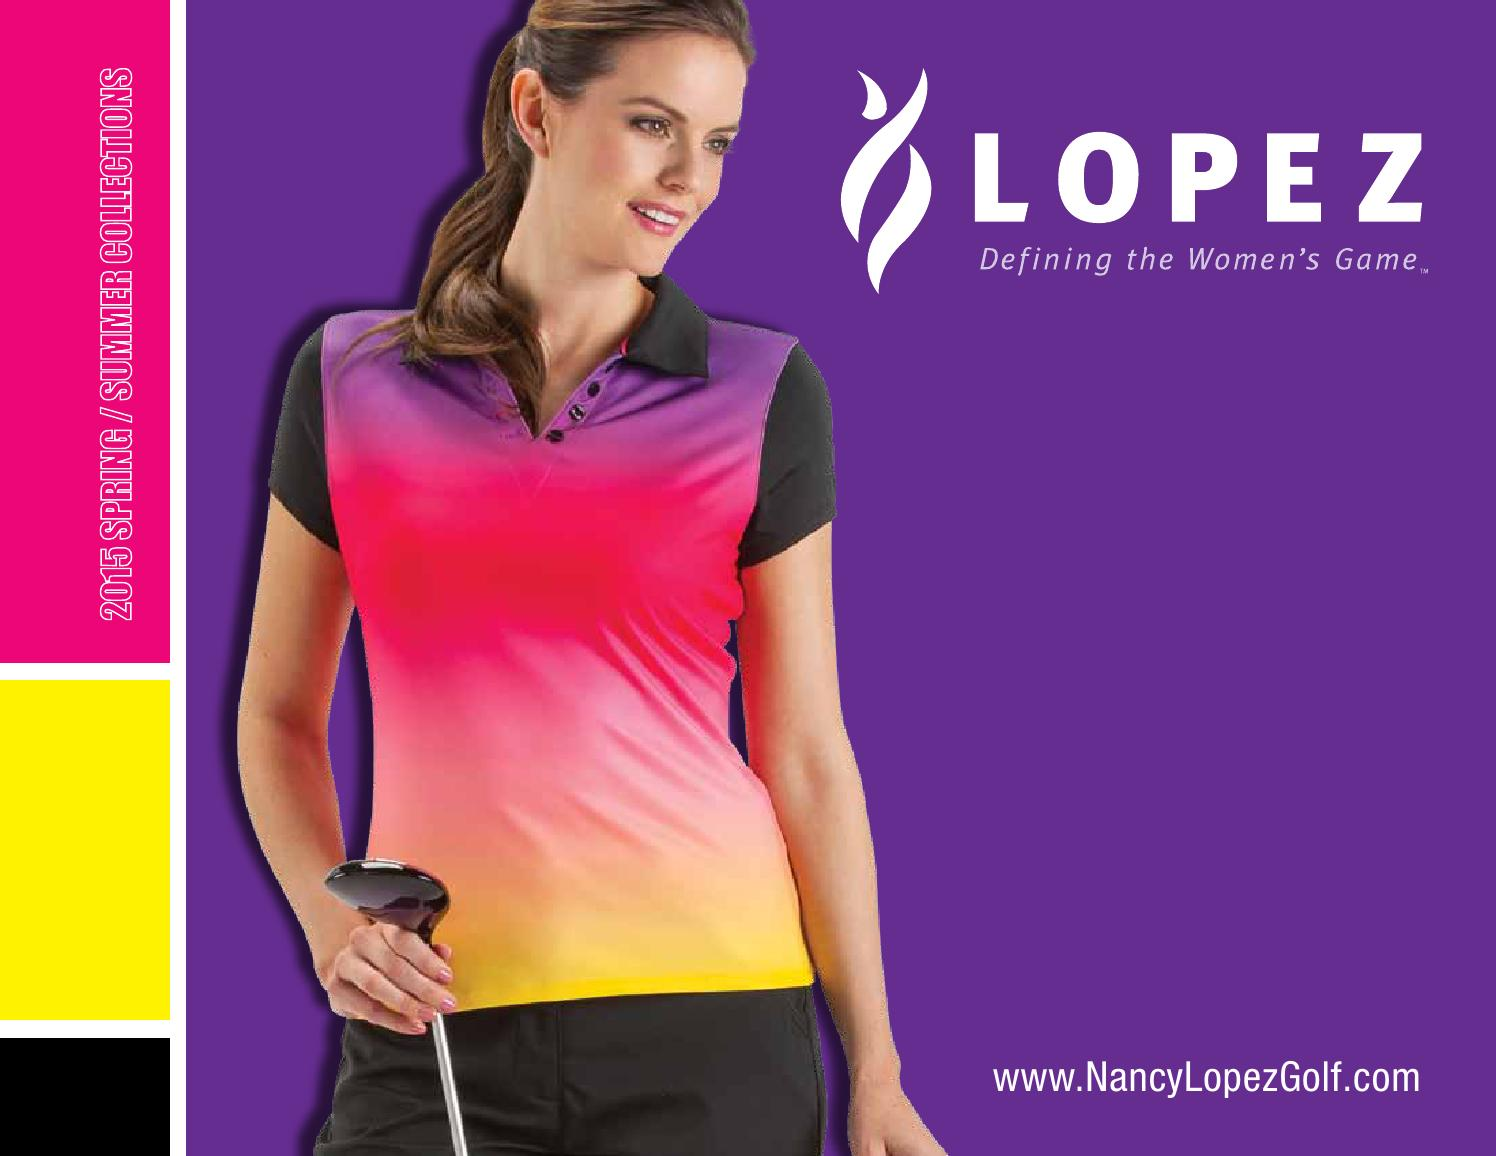 24de3fdd3a0 Sping 2015 Nancy Lopez Golf Apparel by Lori s Golf Shoppe - issuu